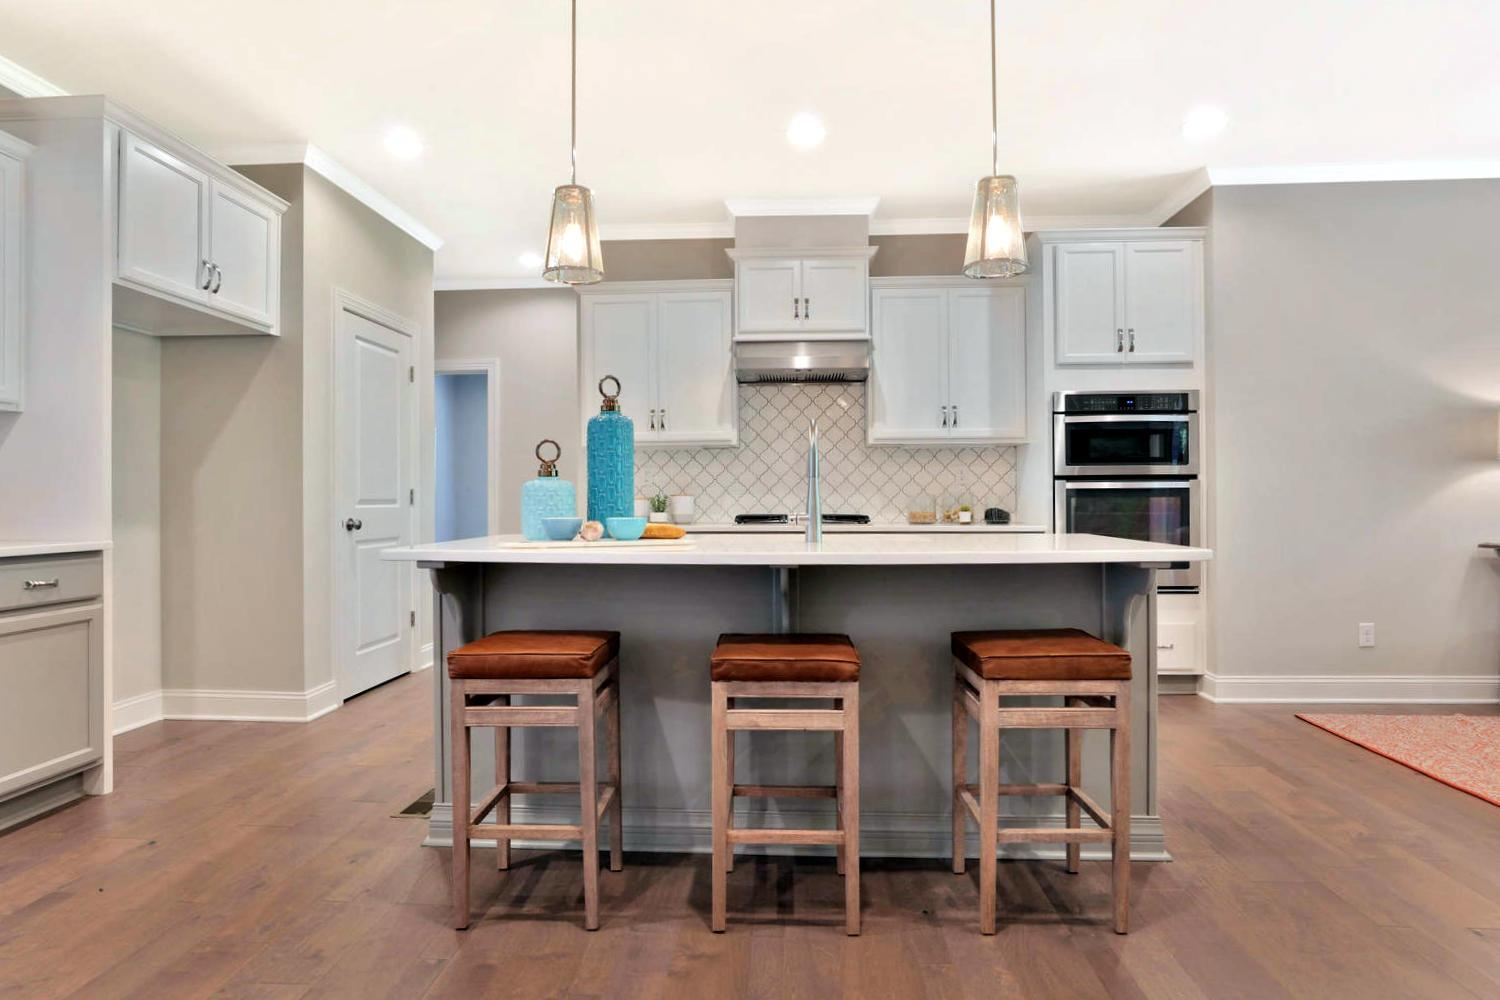 Kitchen featured in the Amelia By Main Street Homes in Richmond-Petersburg, VA